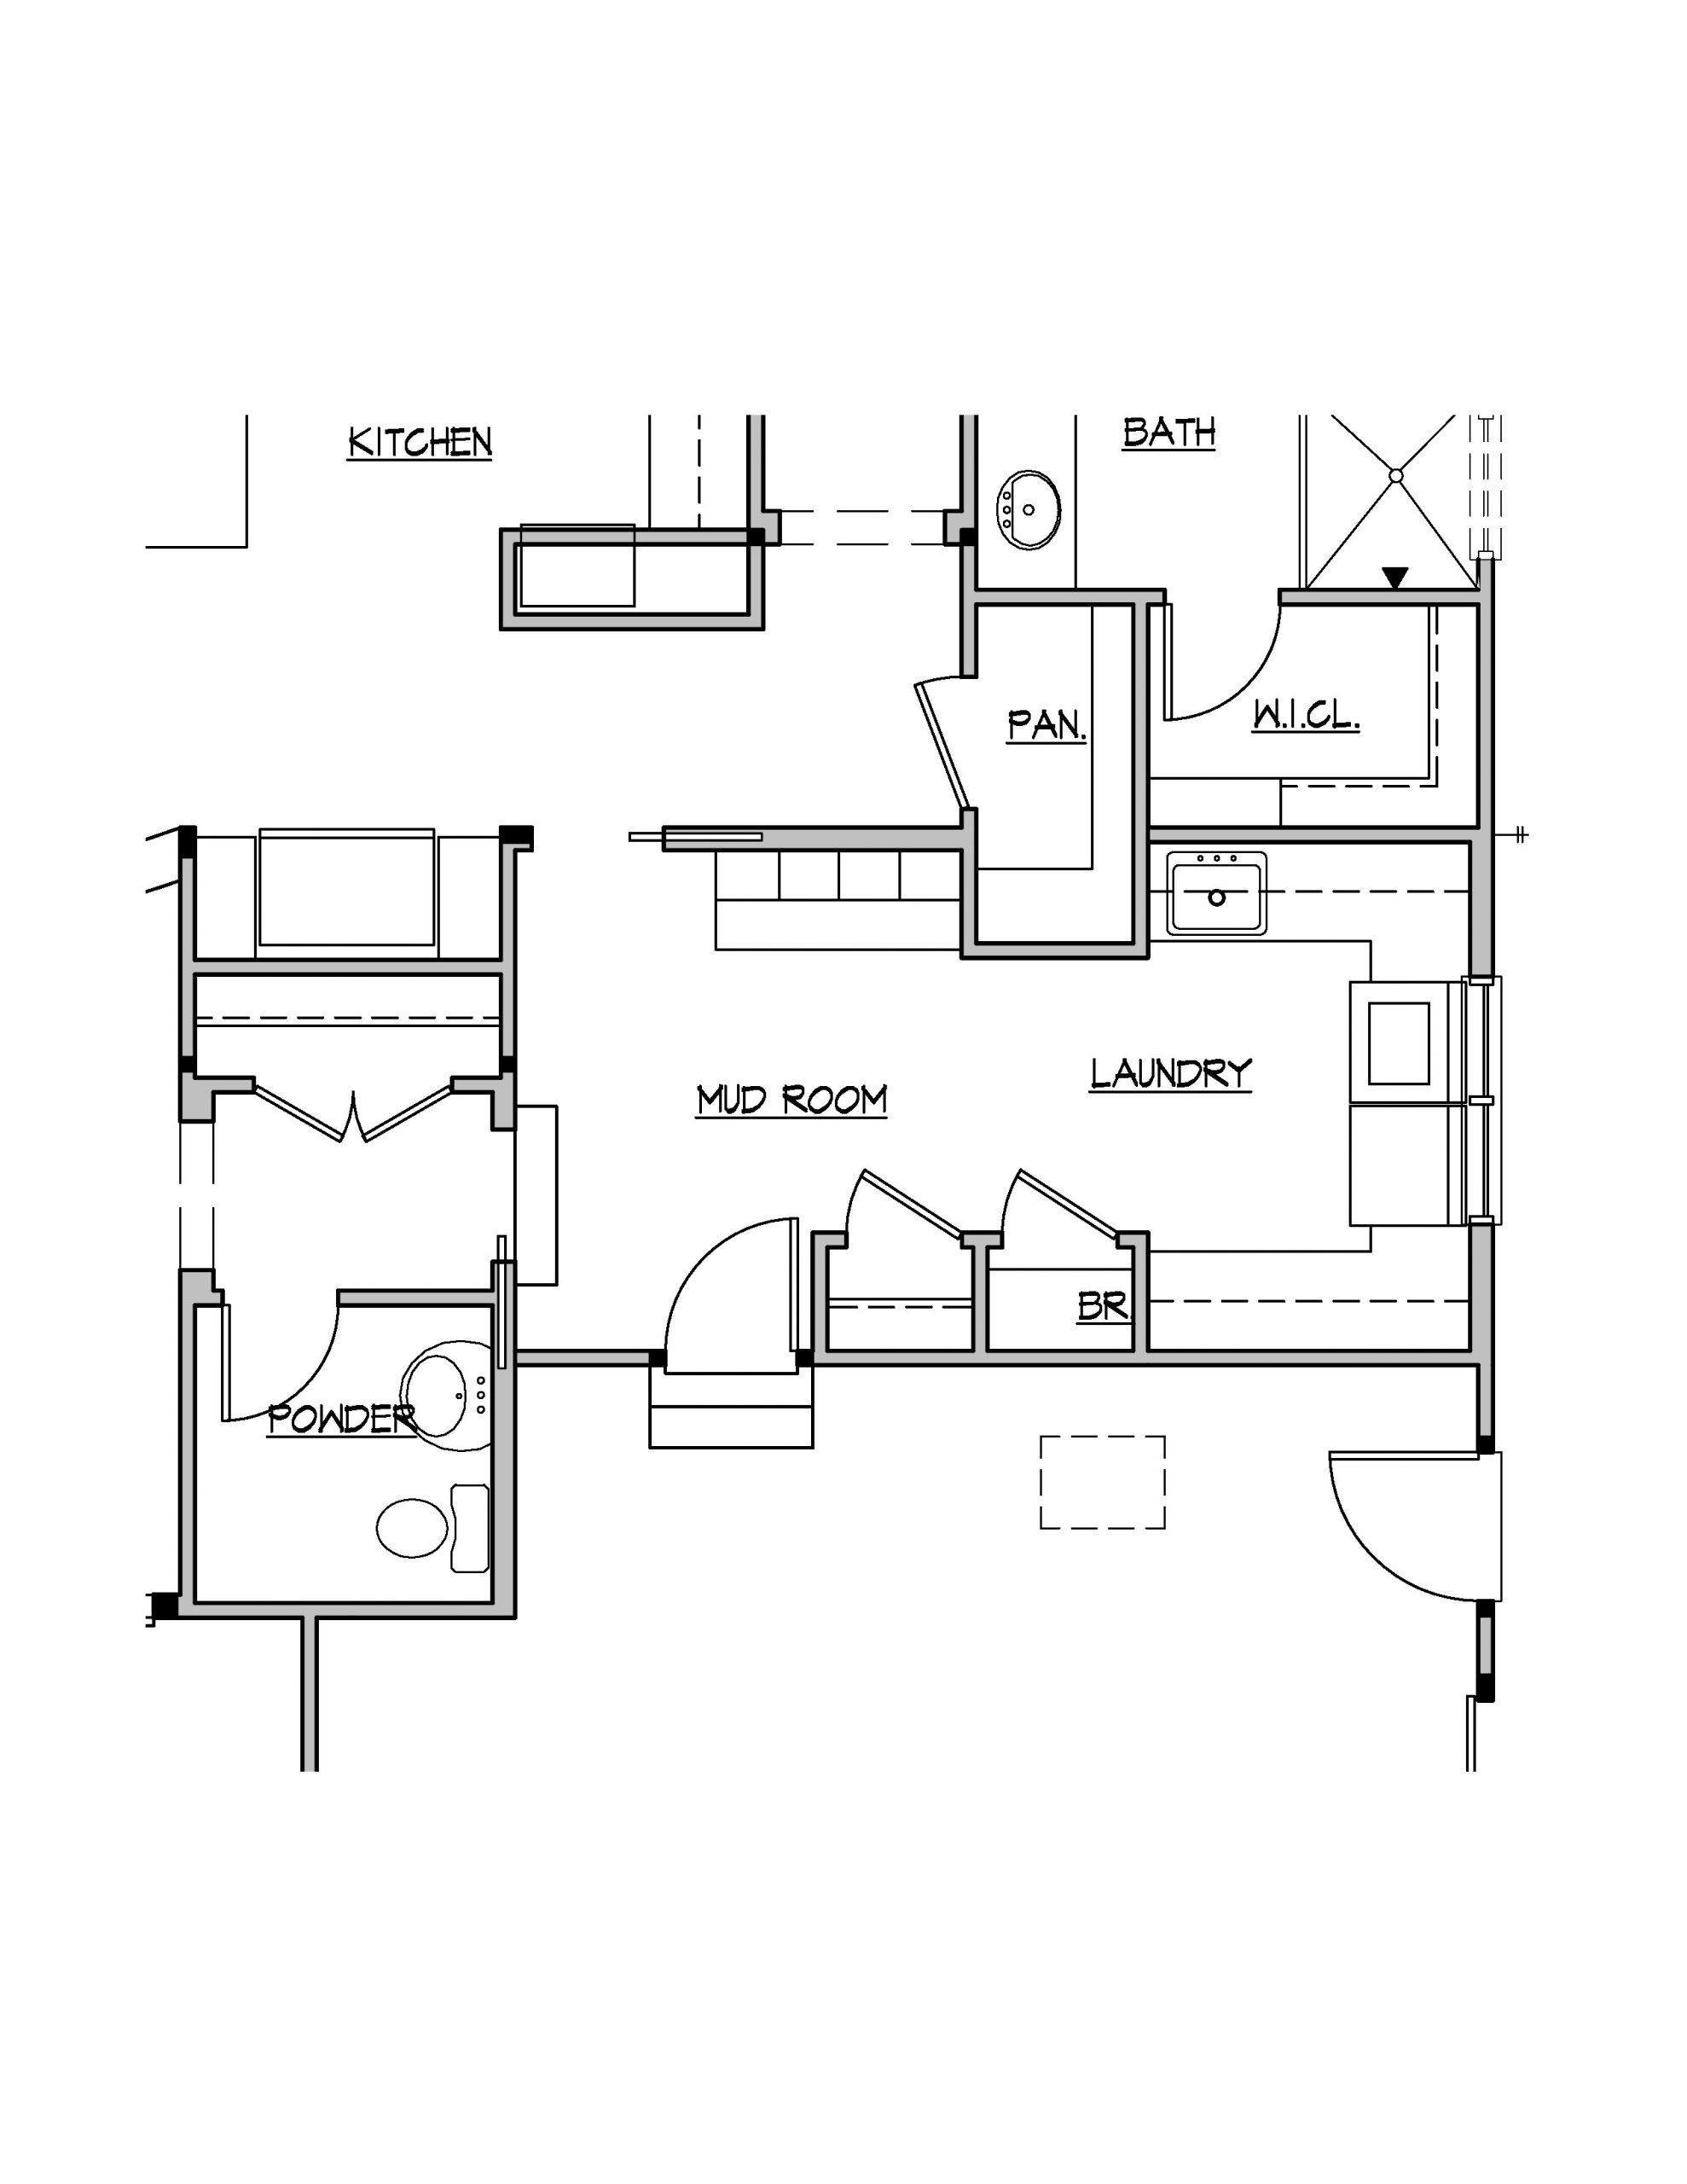 Living Room Layout Design Tool Home And Interior Ideas Staggering Line Room Drawing Tool In 2020 Laundry Room Layouts Room Layout Design Bathroom Floor Plans